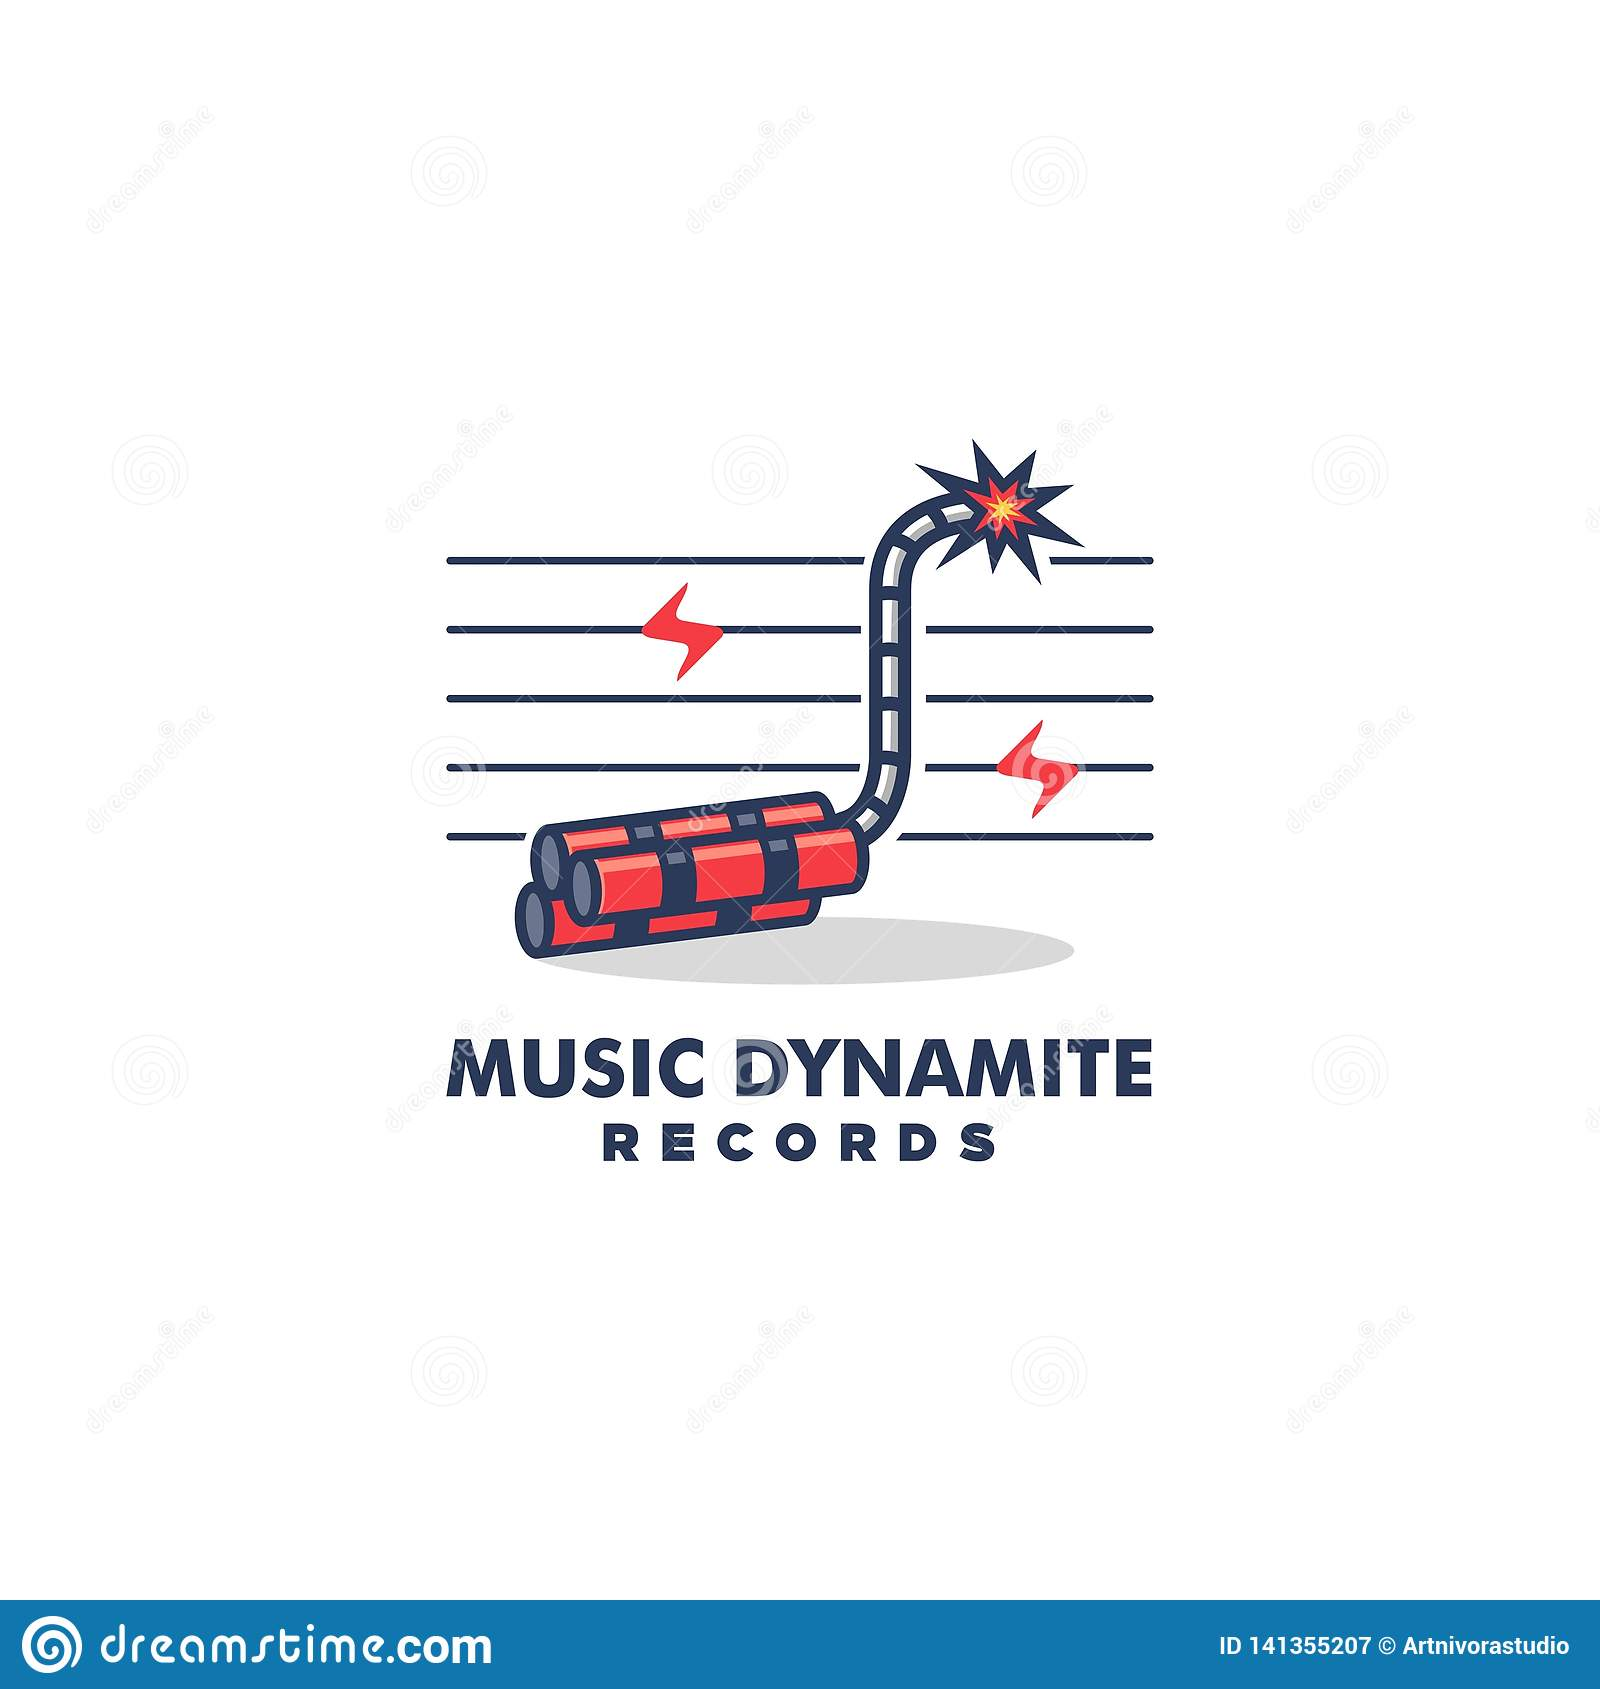 Music Dynamite Design Concept illustration vector template